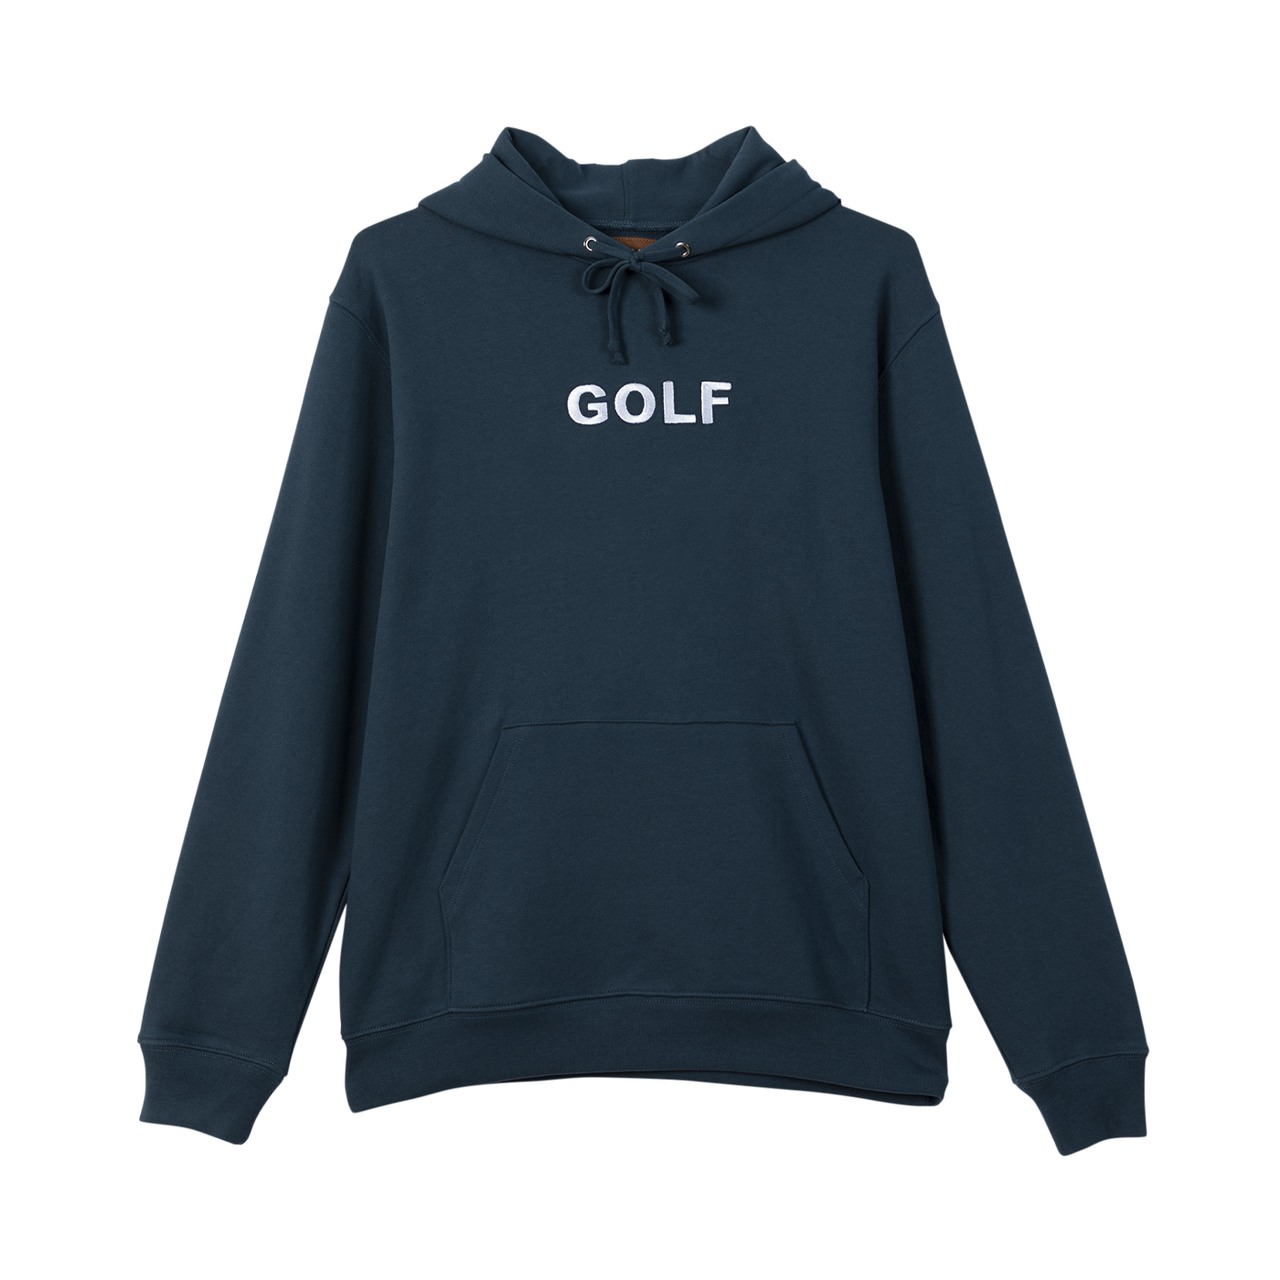 GOLF LOGO EMBROIDERED HOODIE - NAVY by GOLF WANG